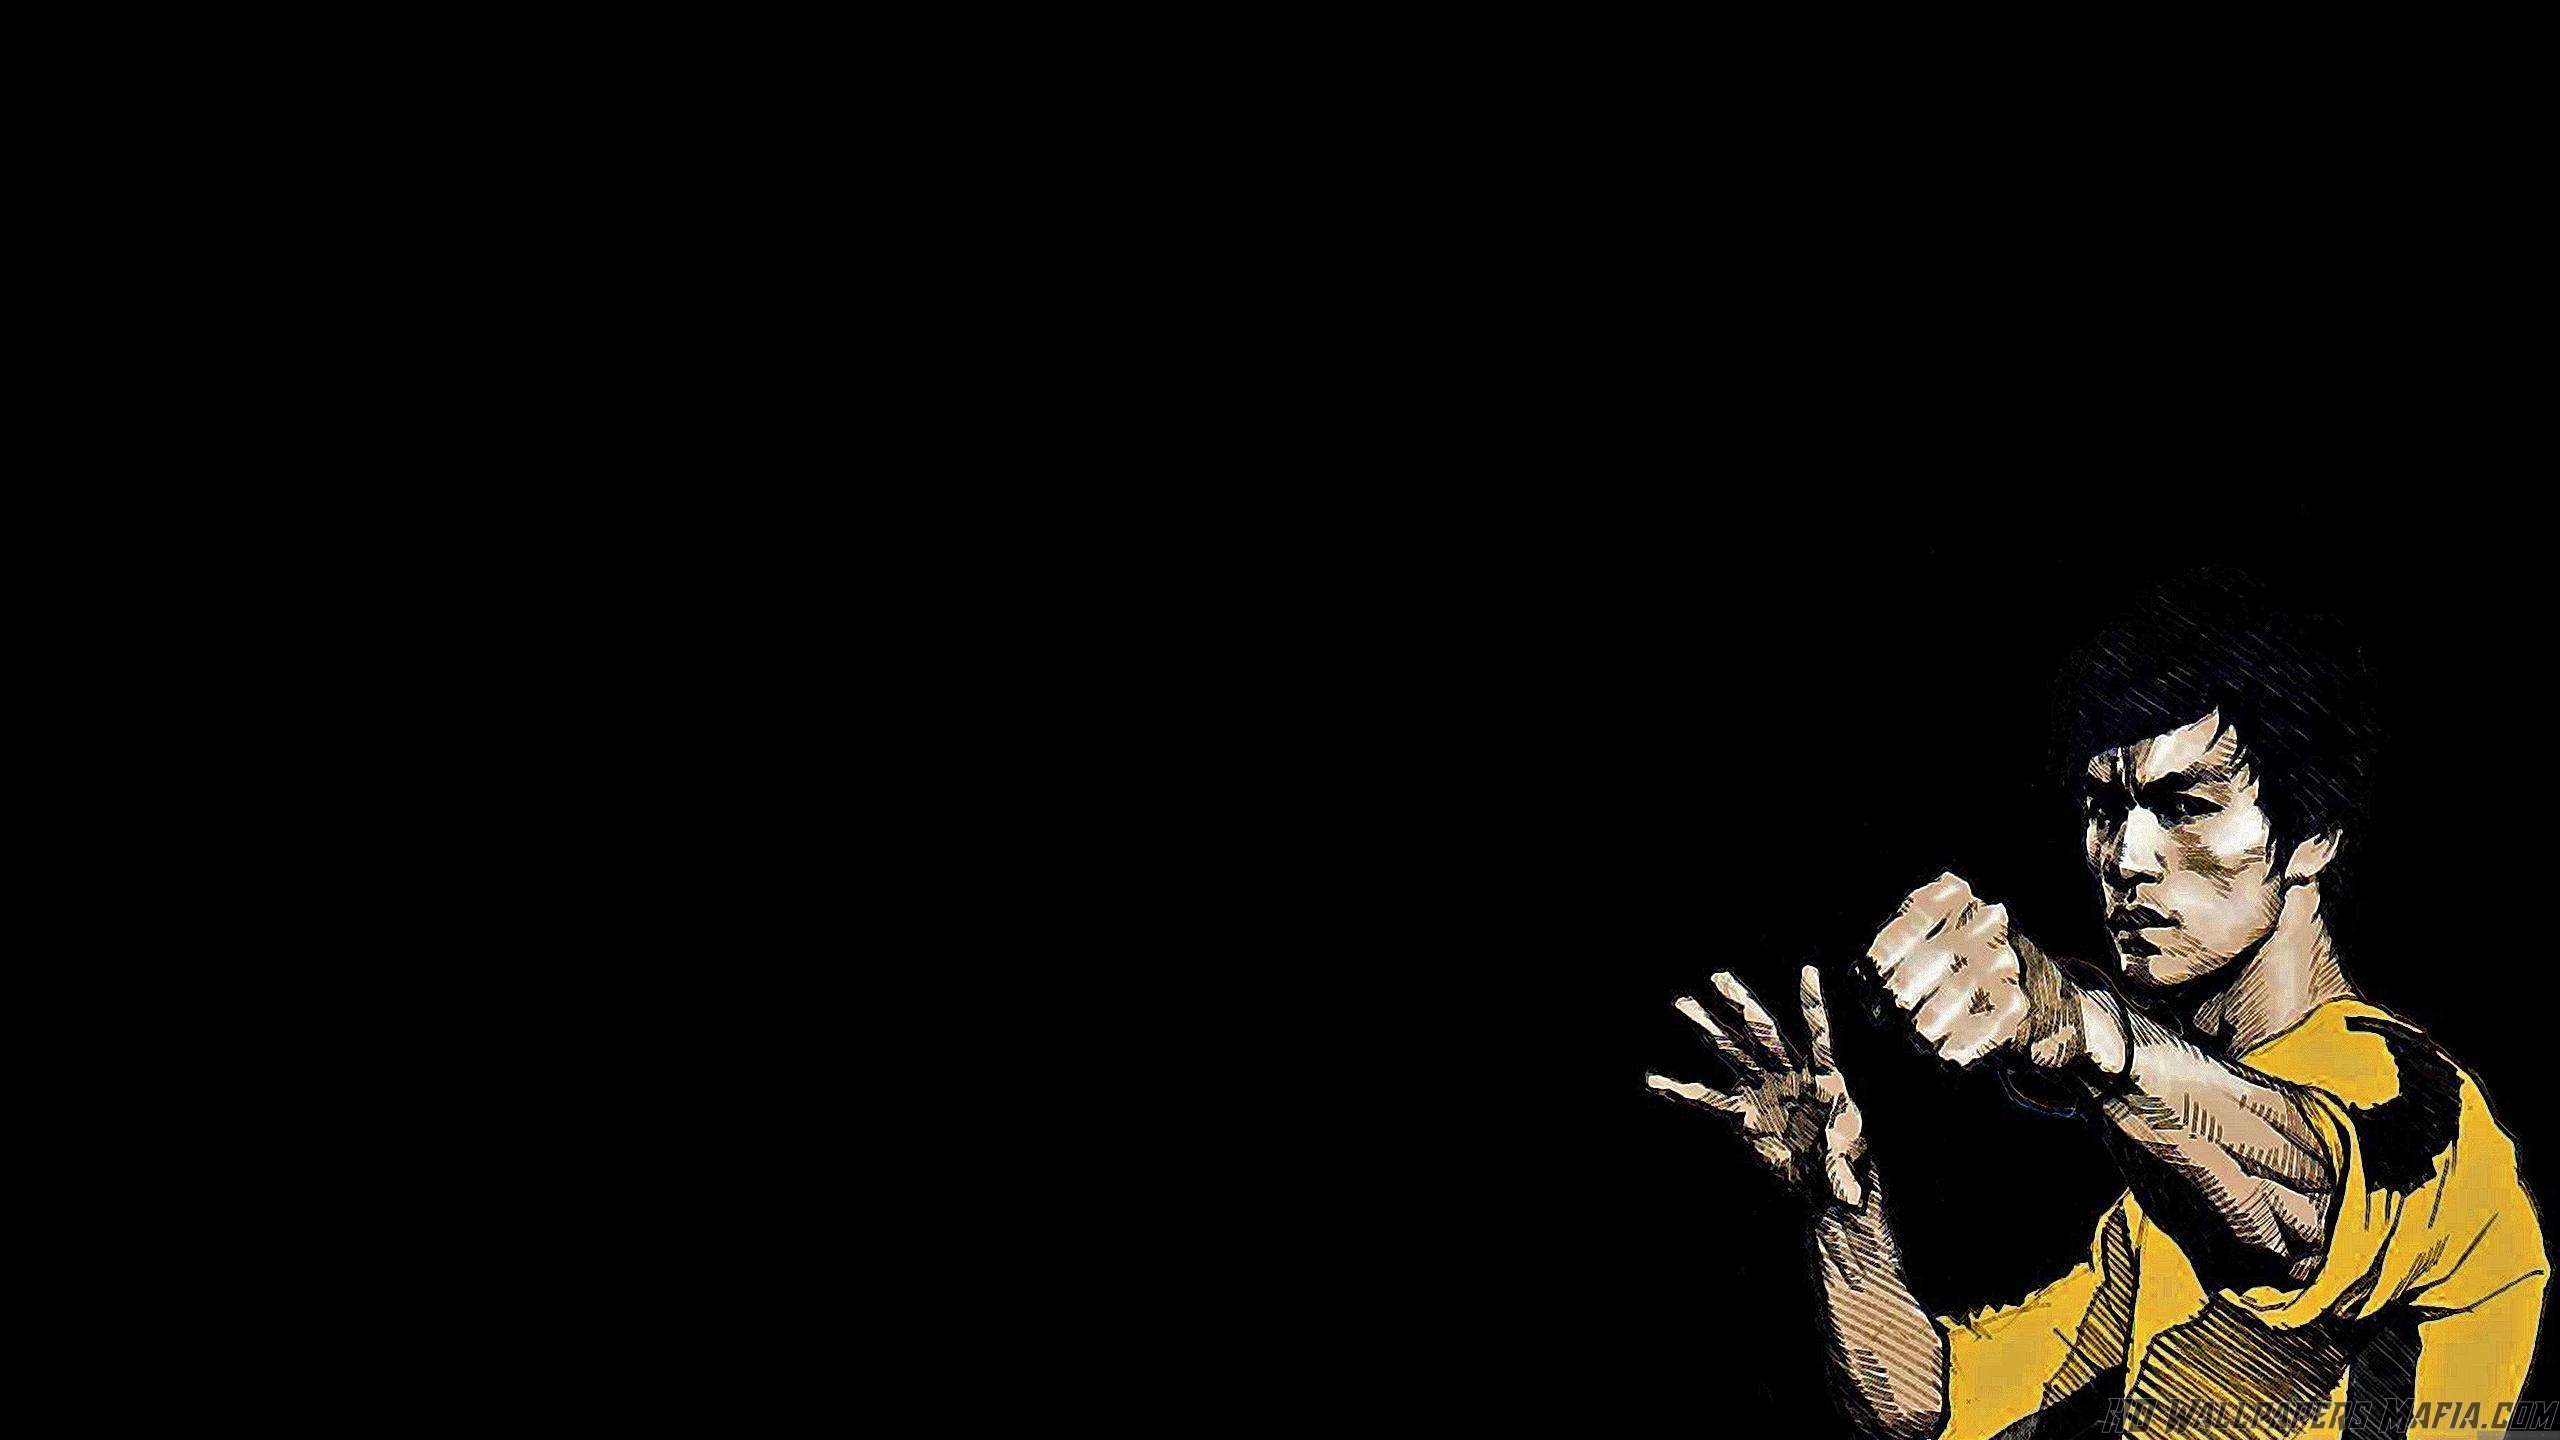 2560x1440 - Bruce Lee Wallpapers 29